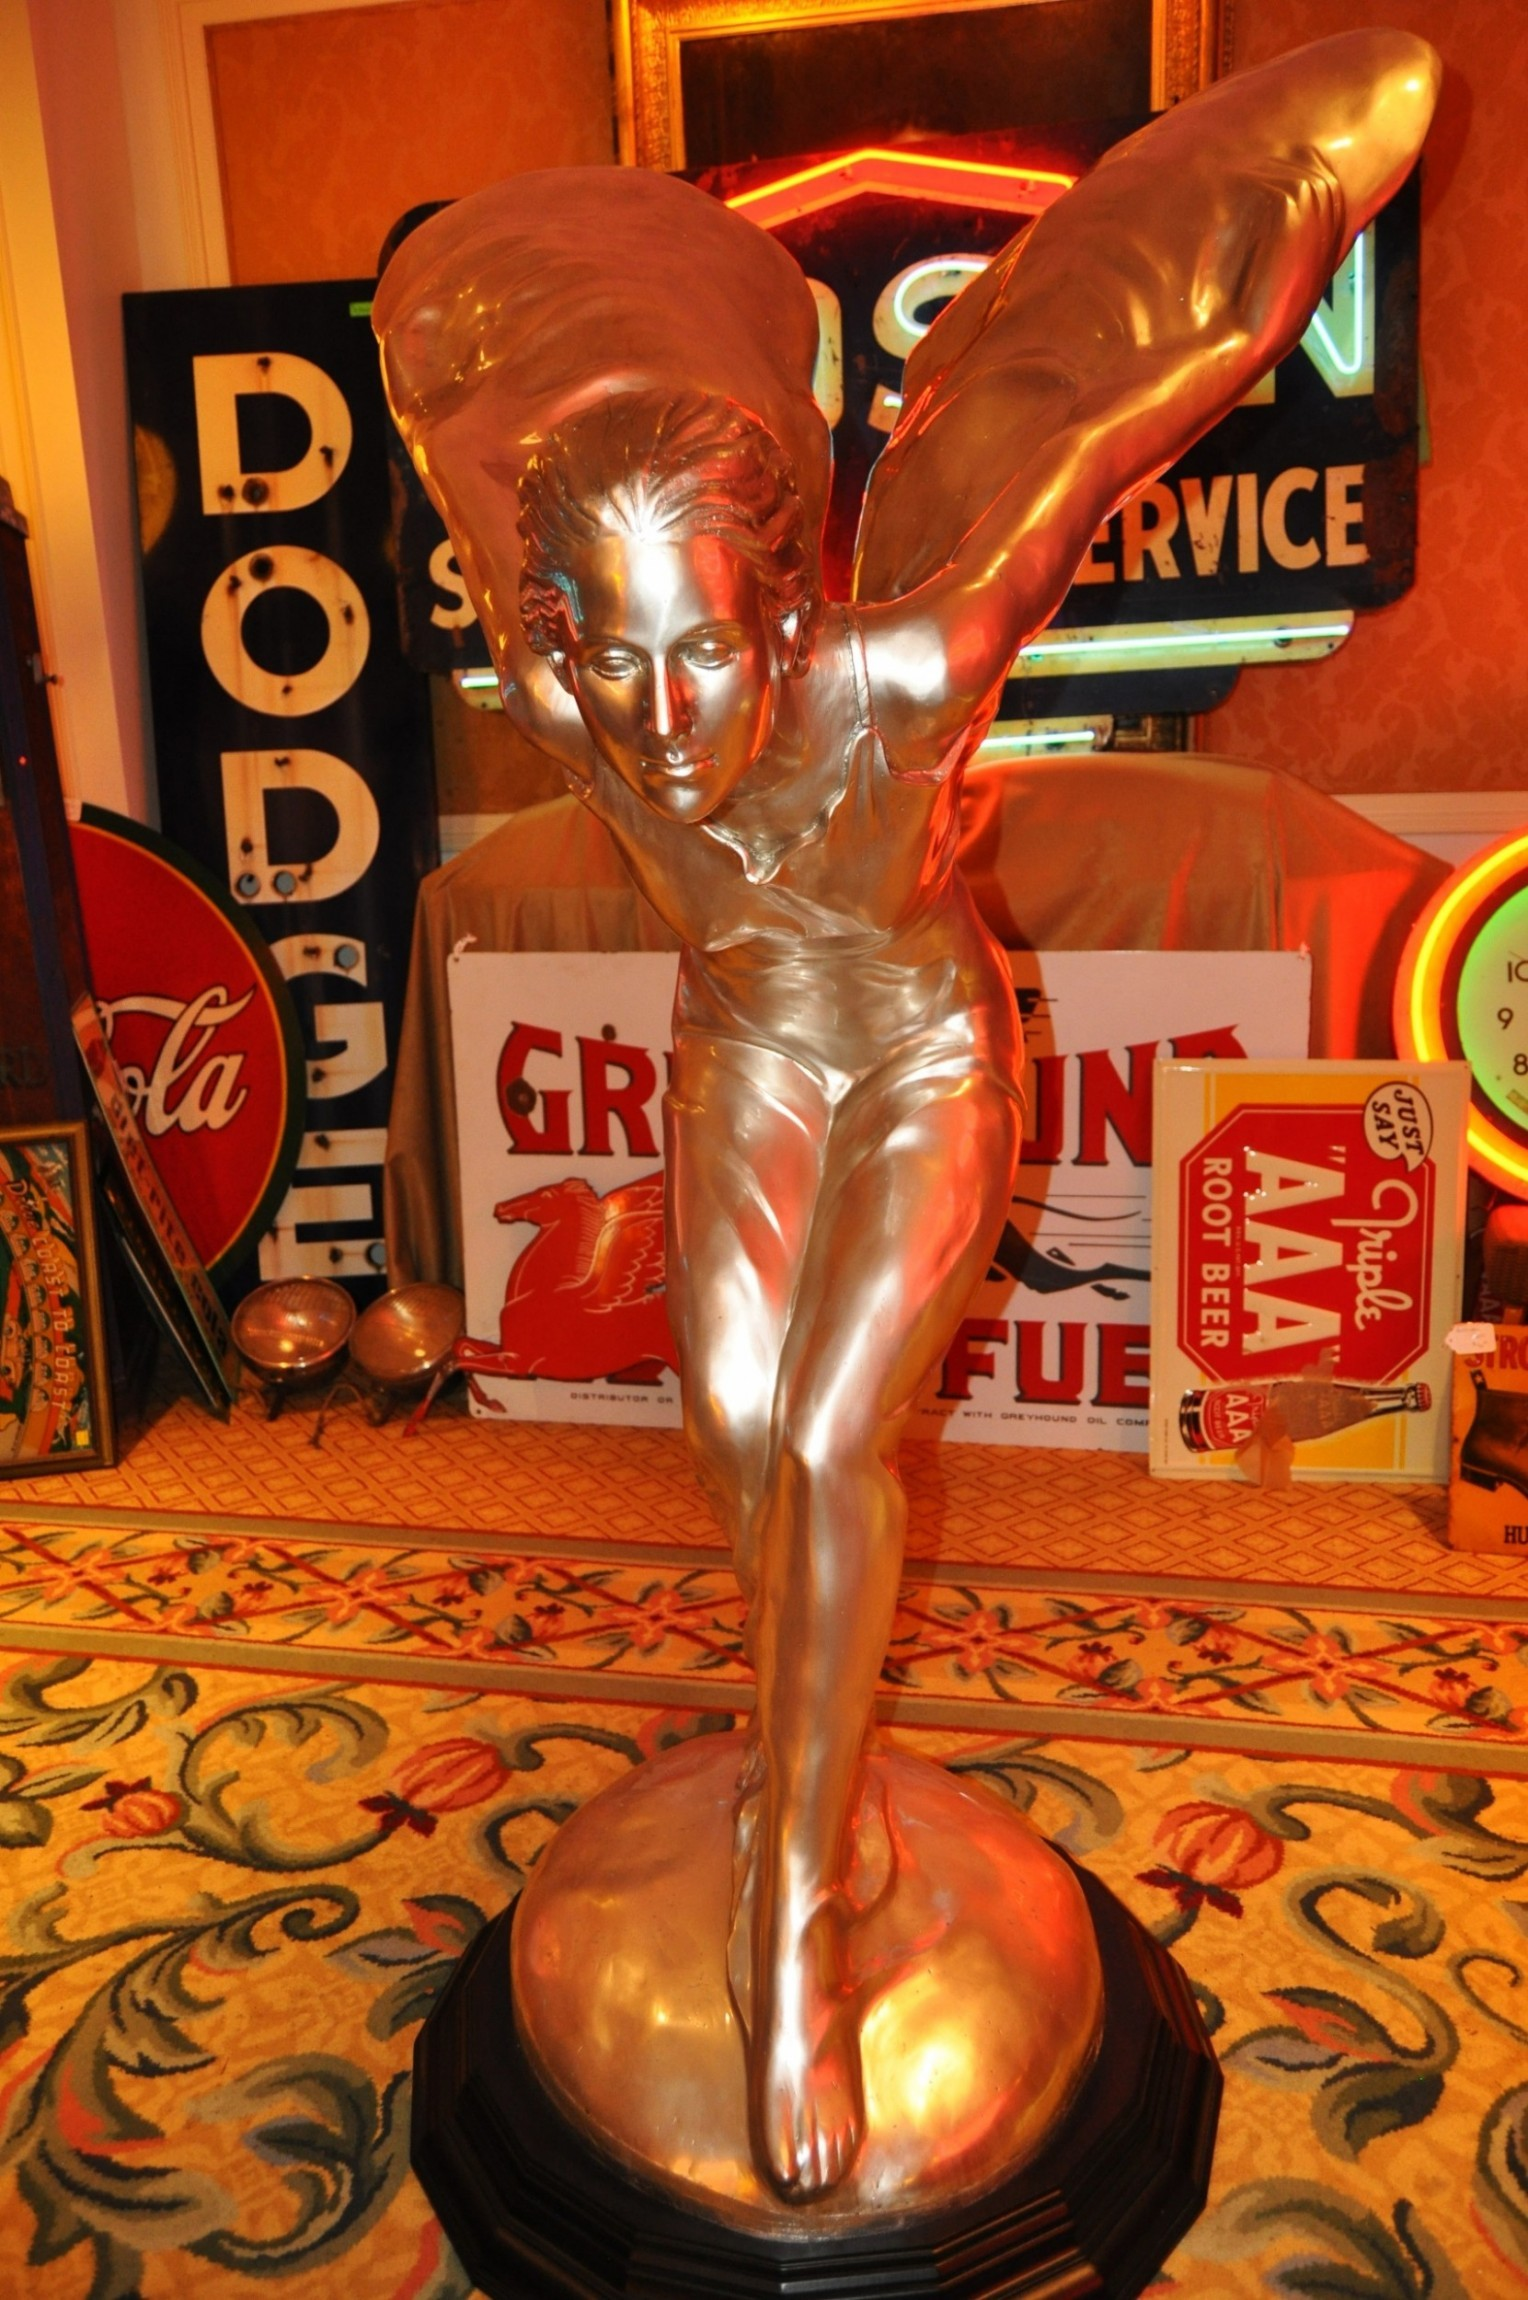 Coolest Vintage Hood Ornaments -- RM Auctions Amelia Island 2014 -- Pierce-Arrow, Cadillac, Stutz, Chrysler, Ford, Aston-Martin, Bentley and More 42